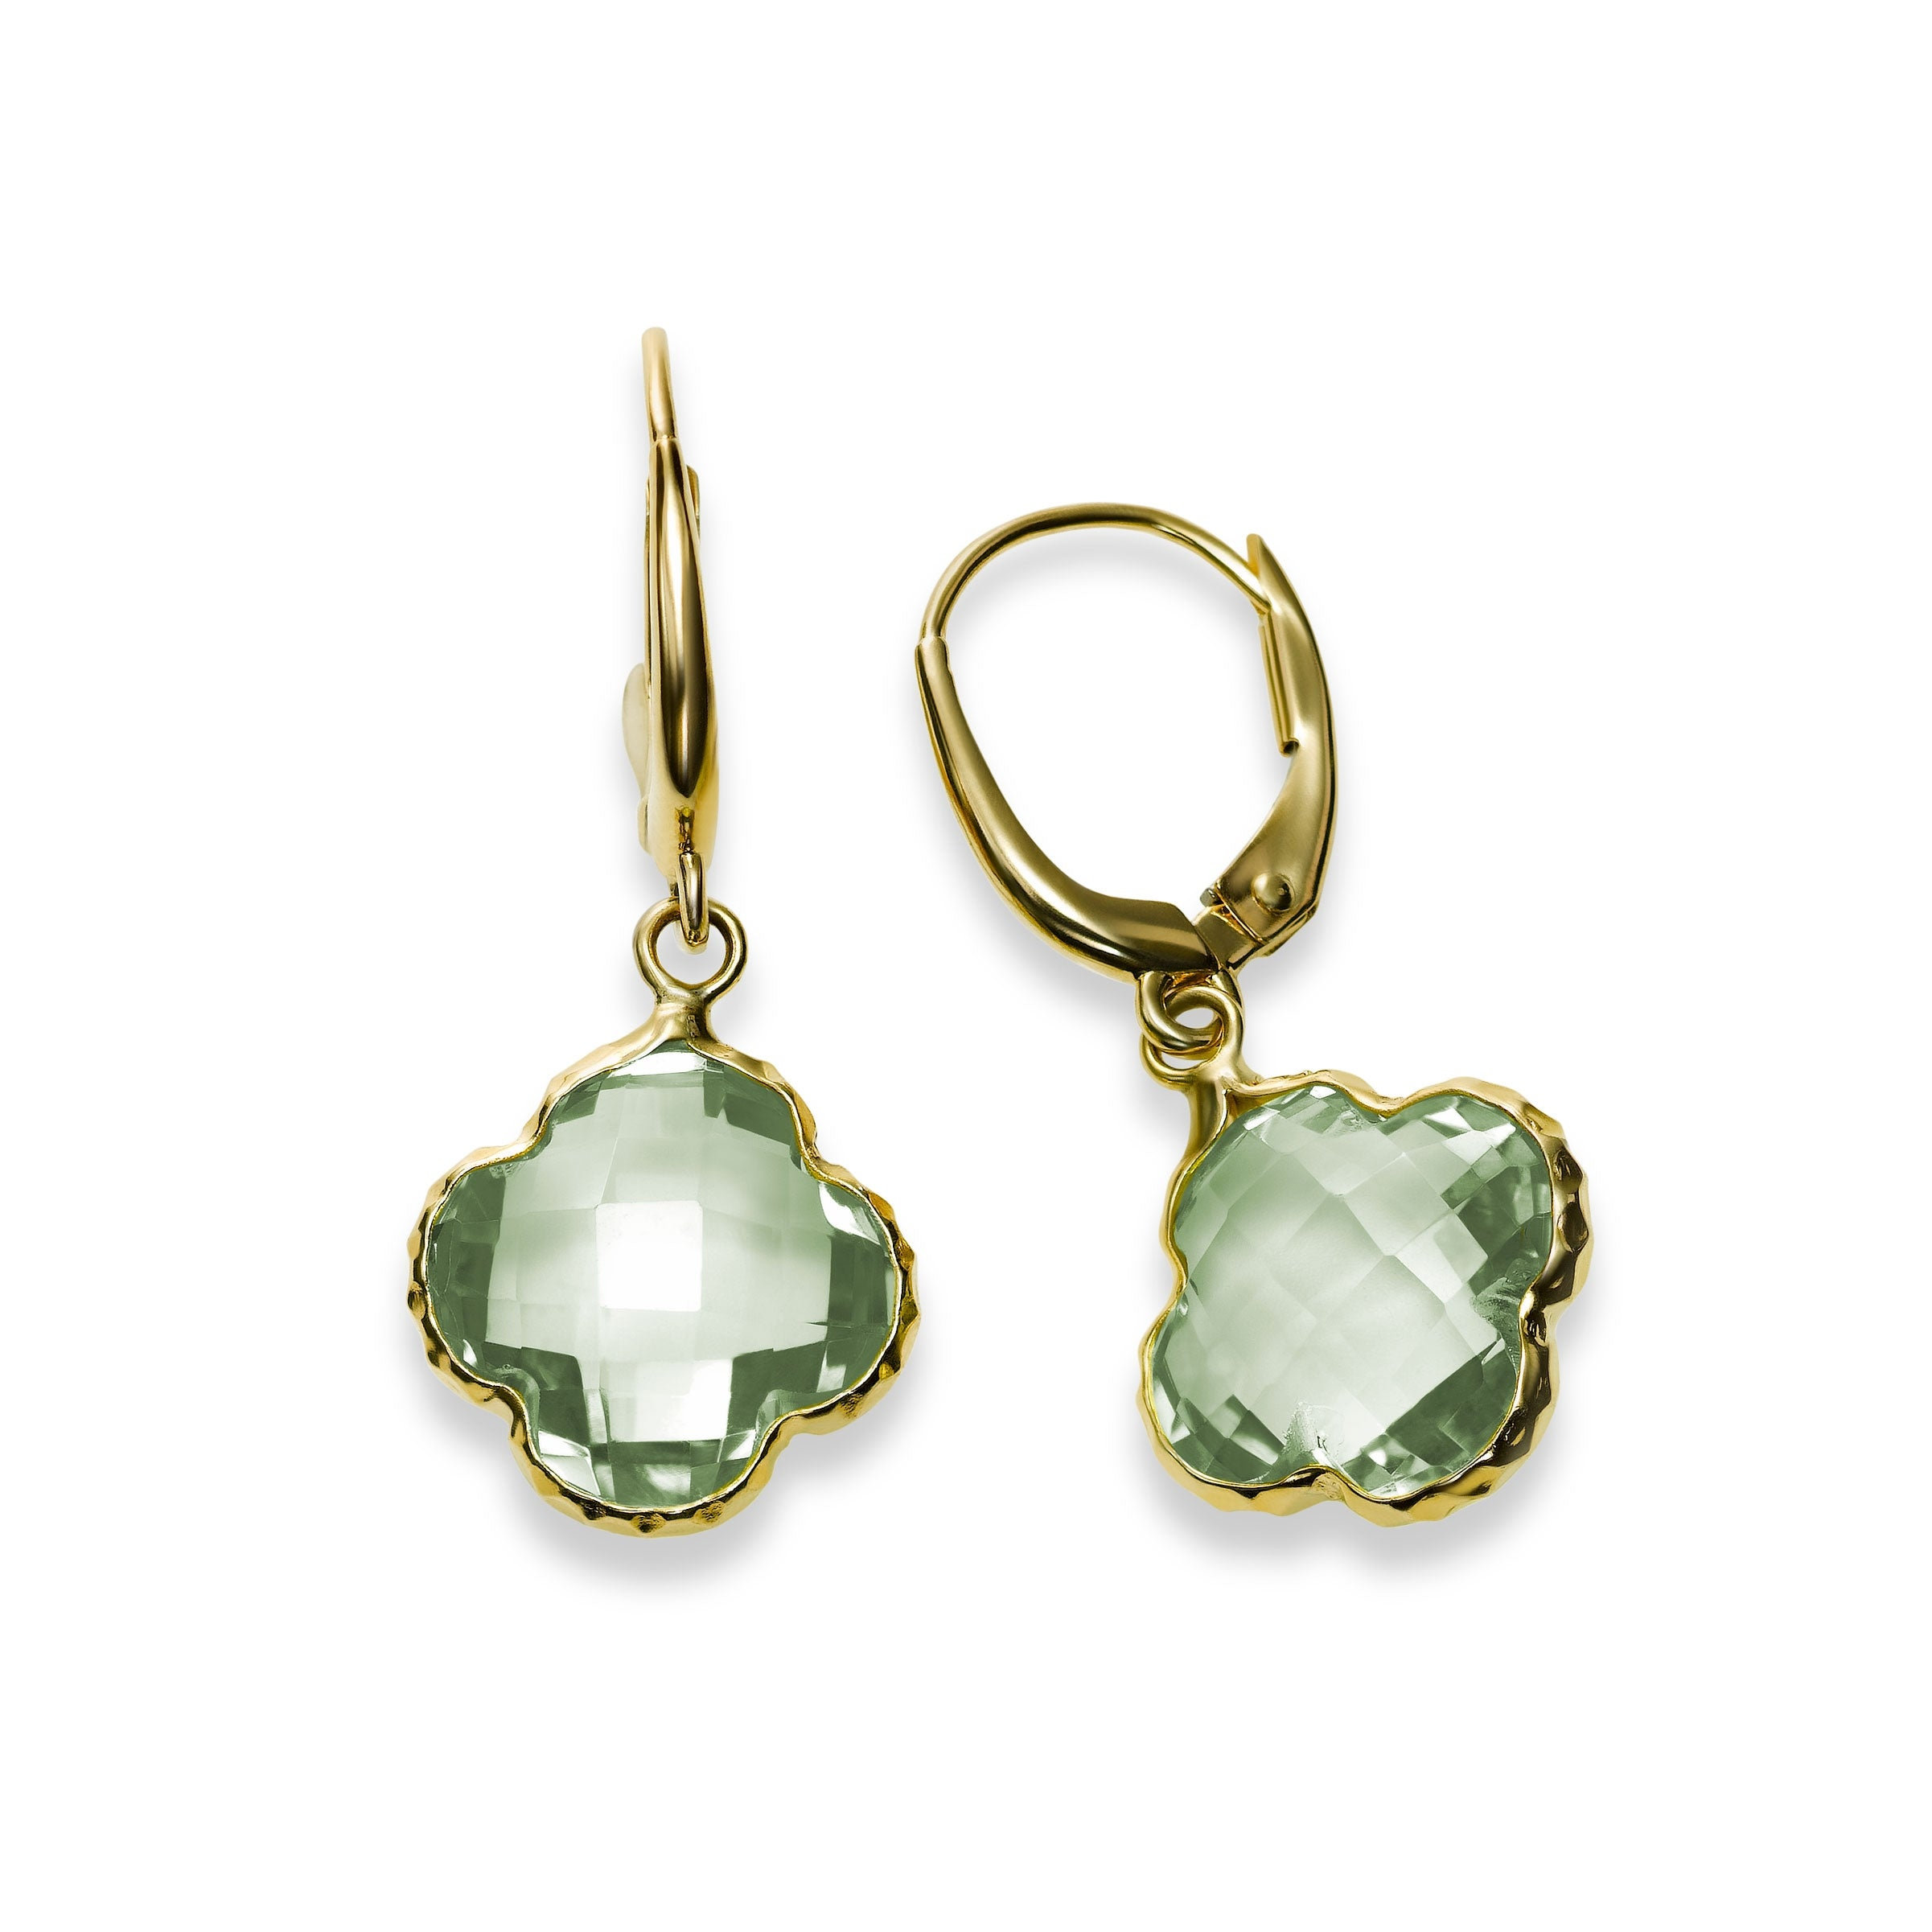 Prasiolite Clover Shaped Drop Earrings, 14K Yellow Gold